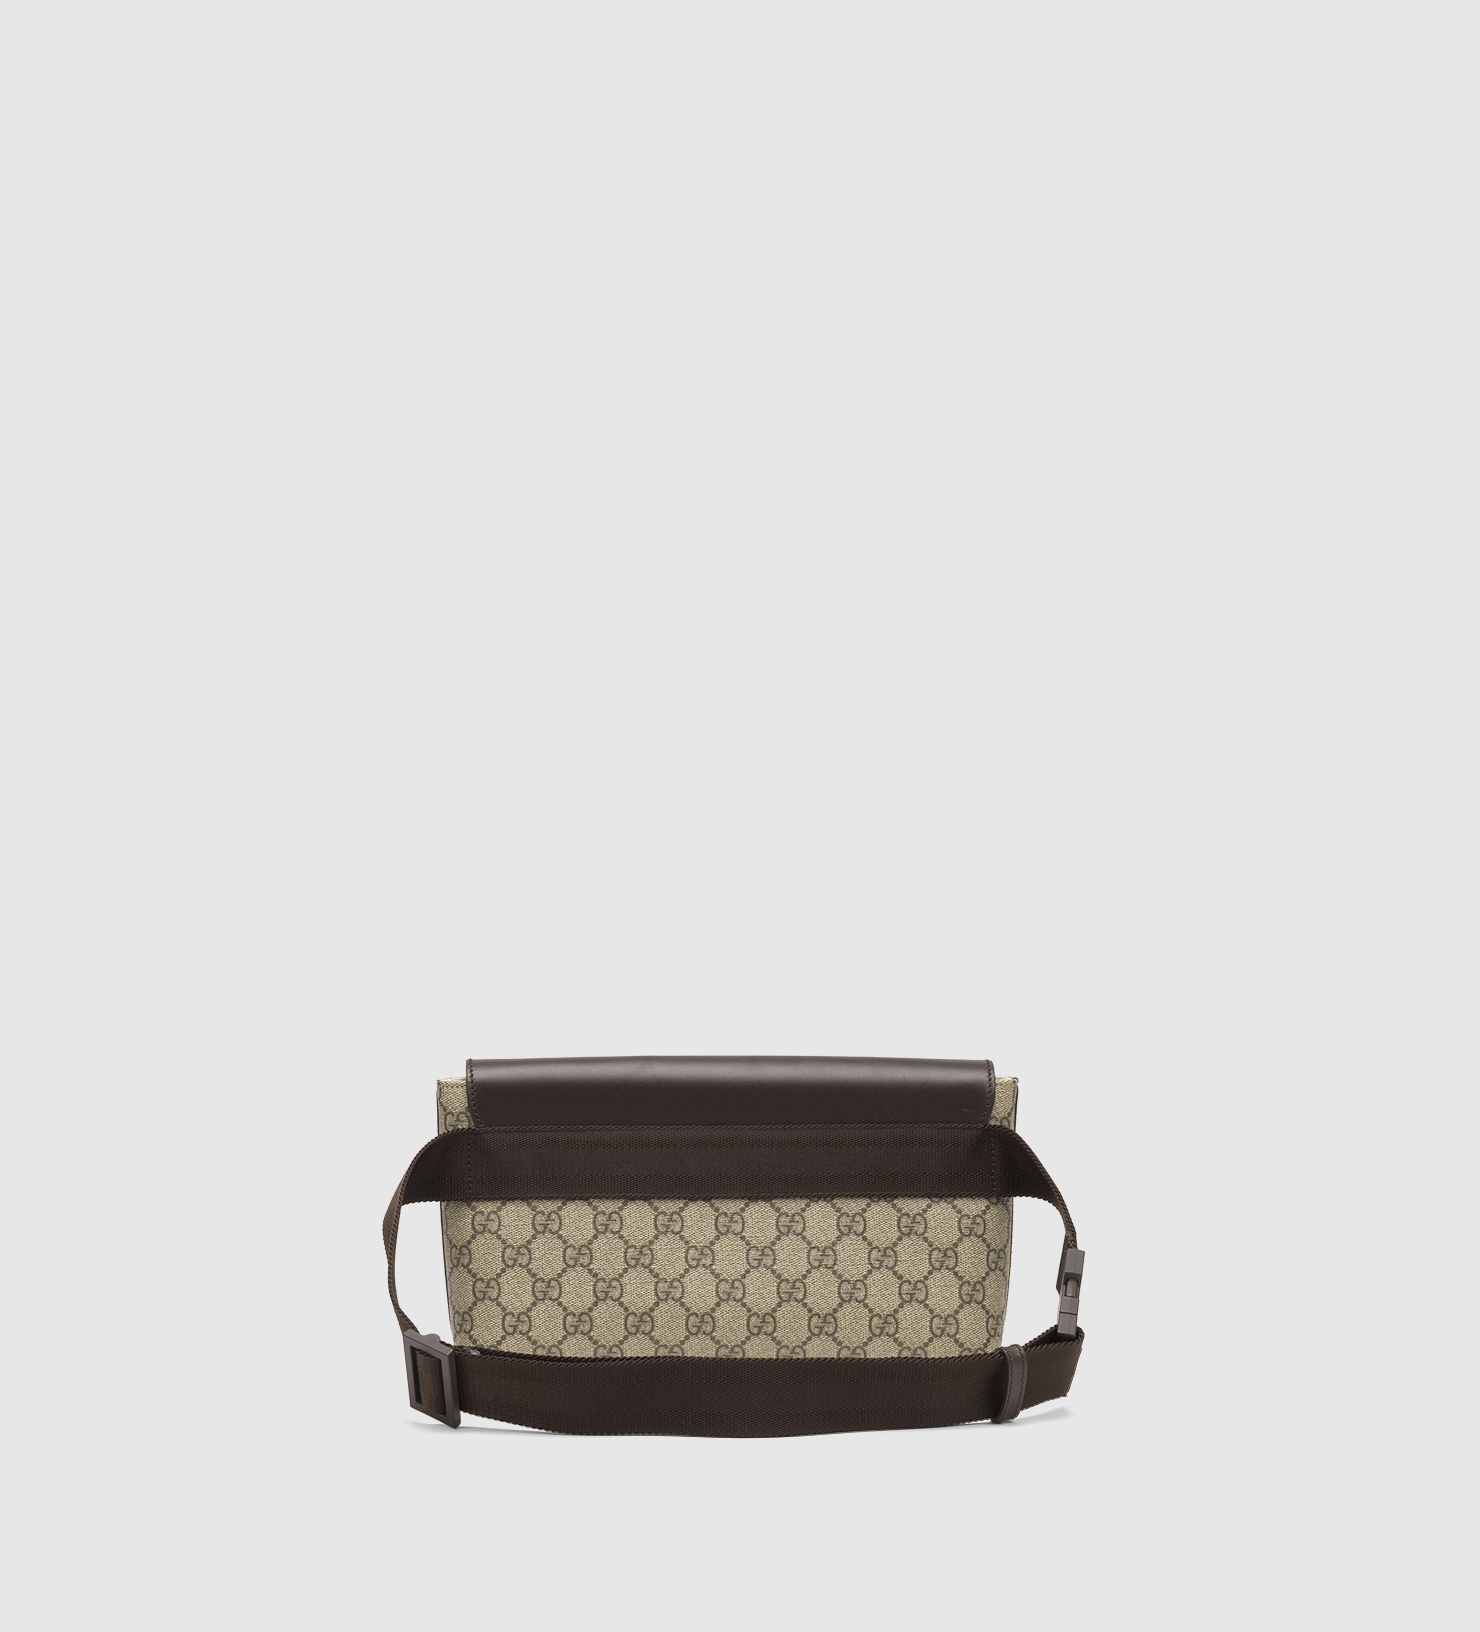 dc732aab227 Lyst - Gucci Gg Supreme Canvas Belt Bag in Brown